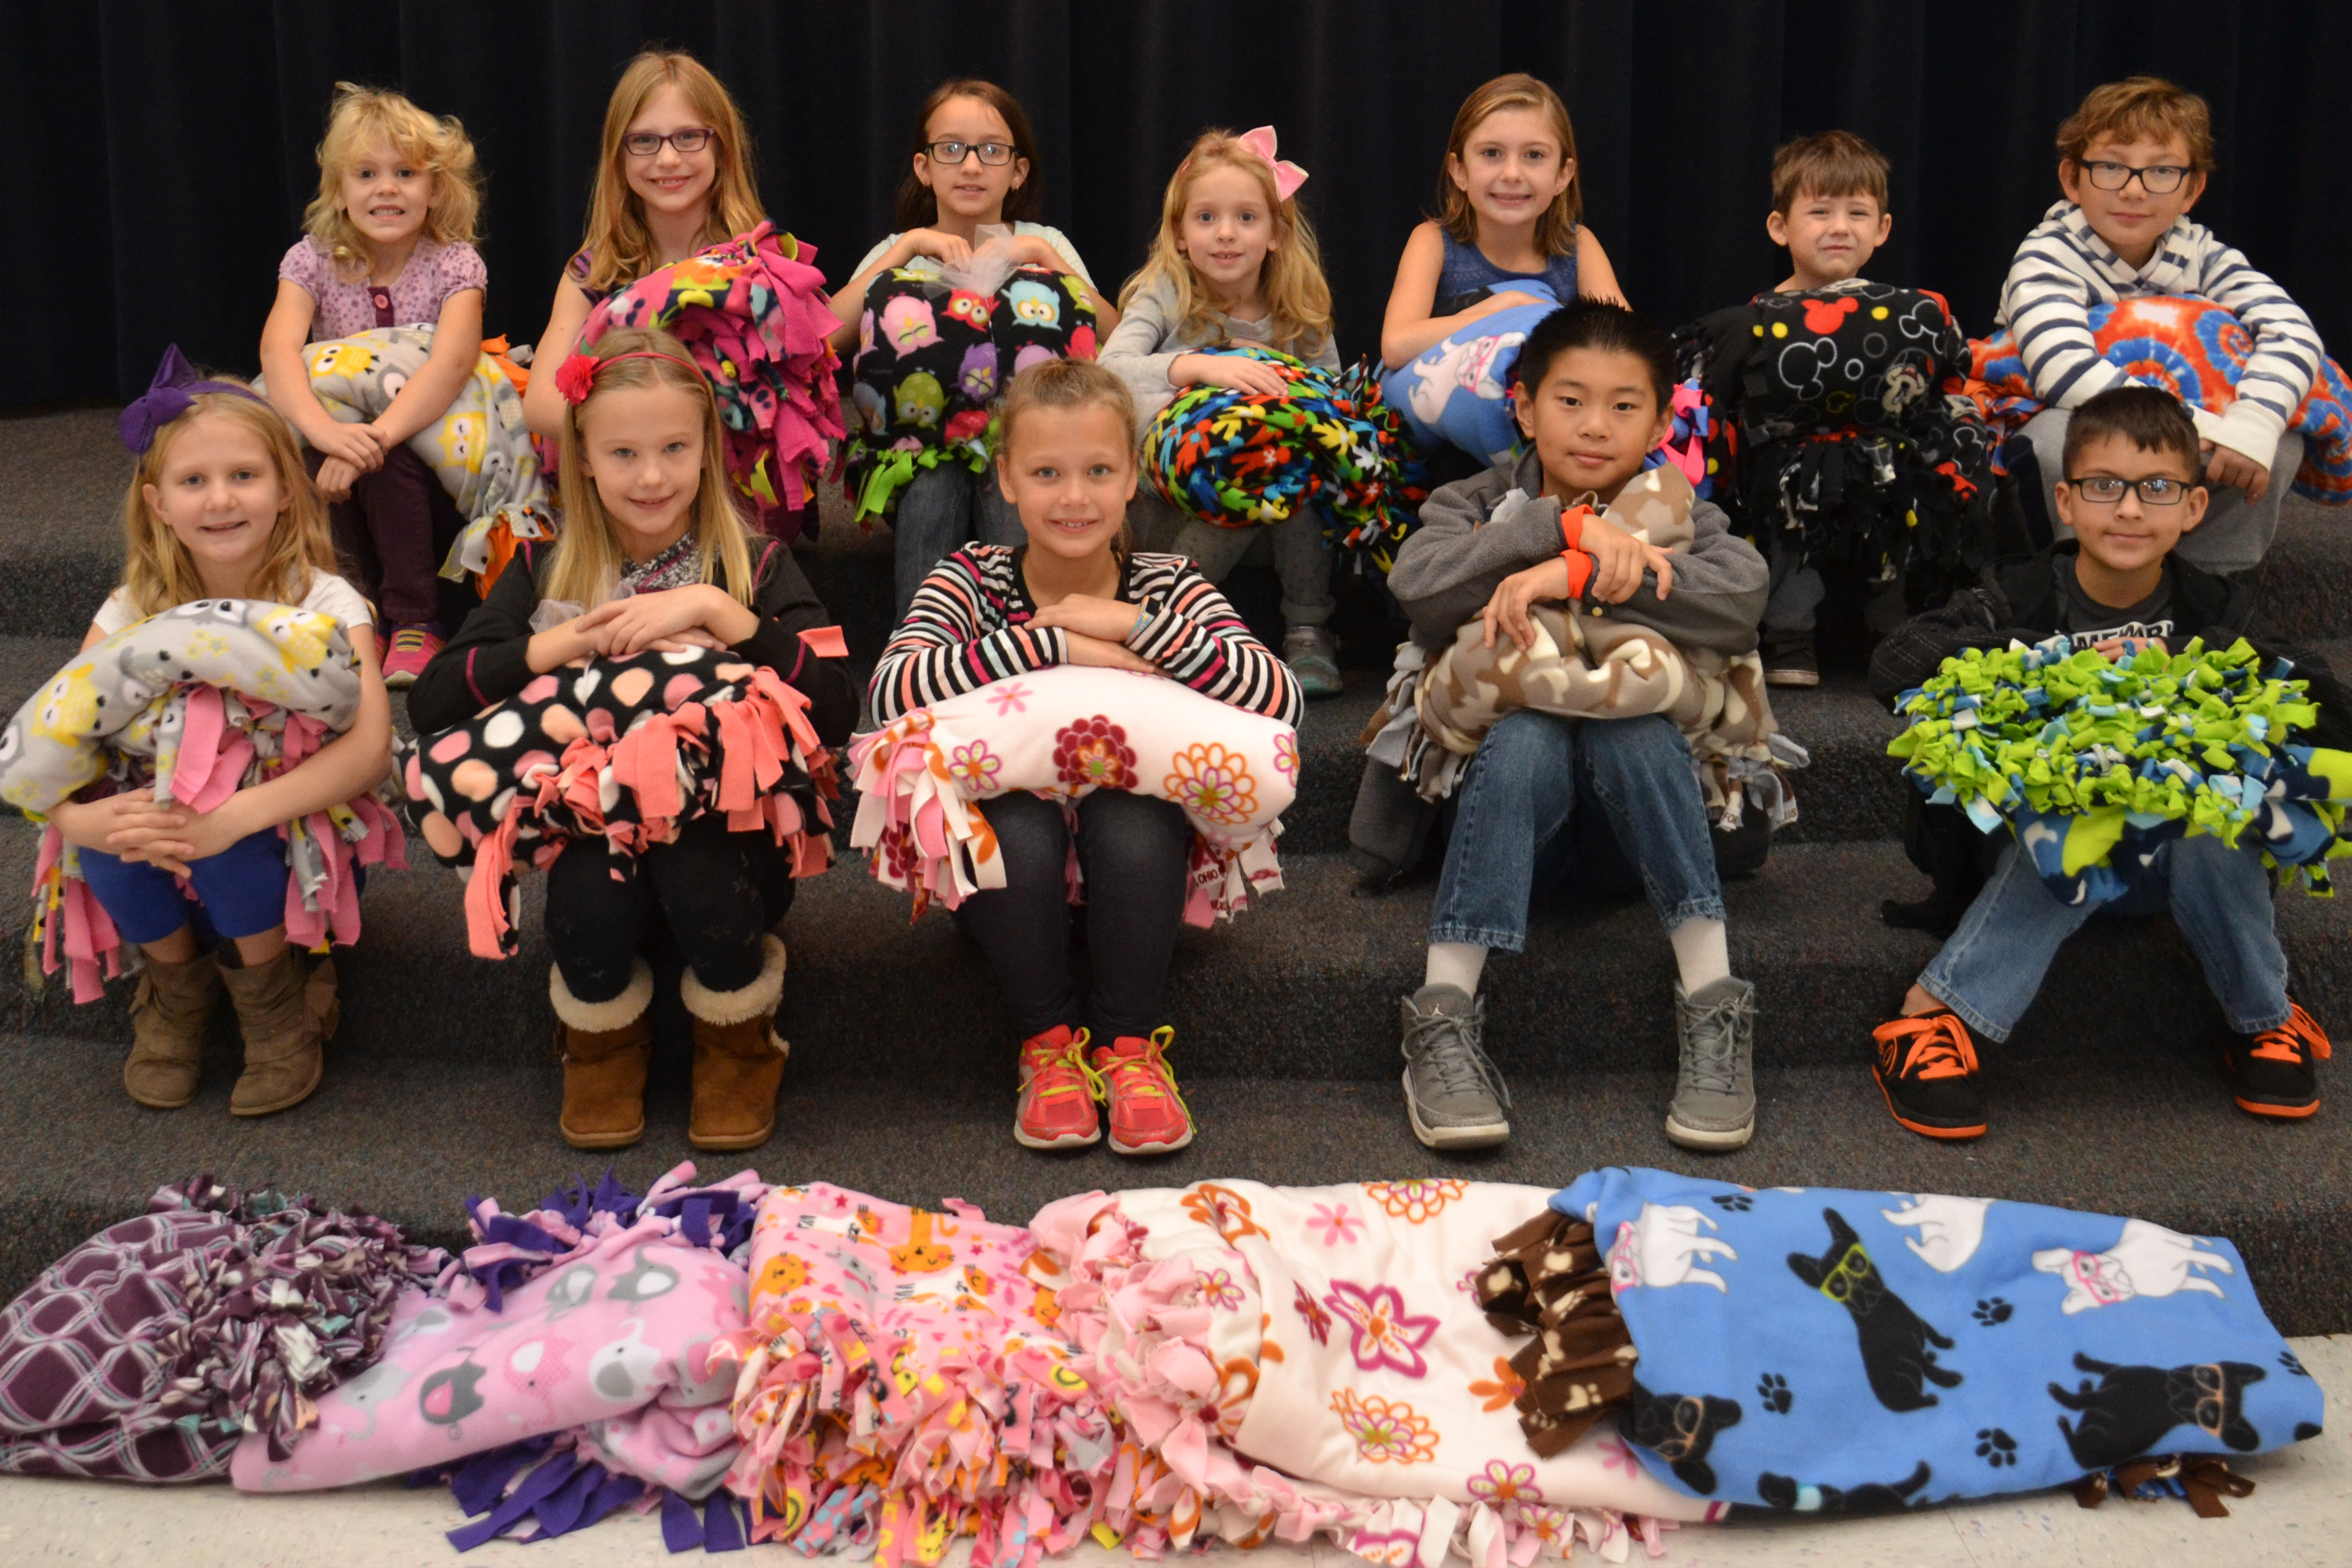 McVay Elementary students pose with some of the blankets they made to be distributed at the Ronald McDonald House.